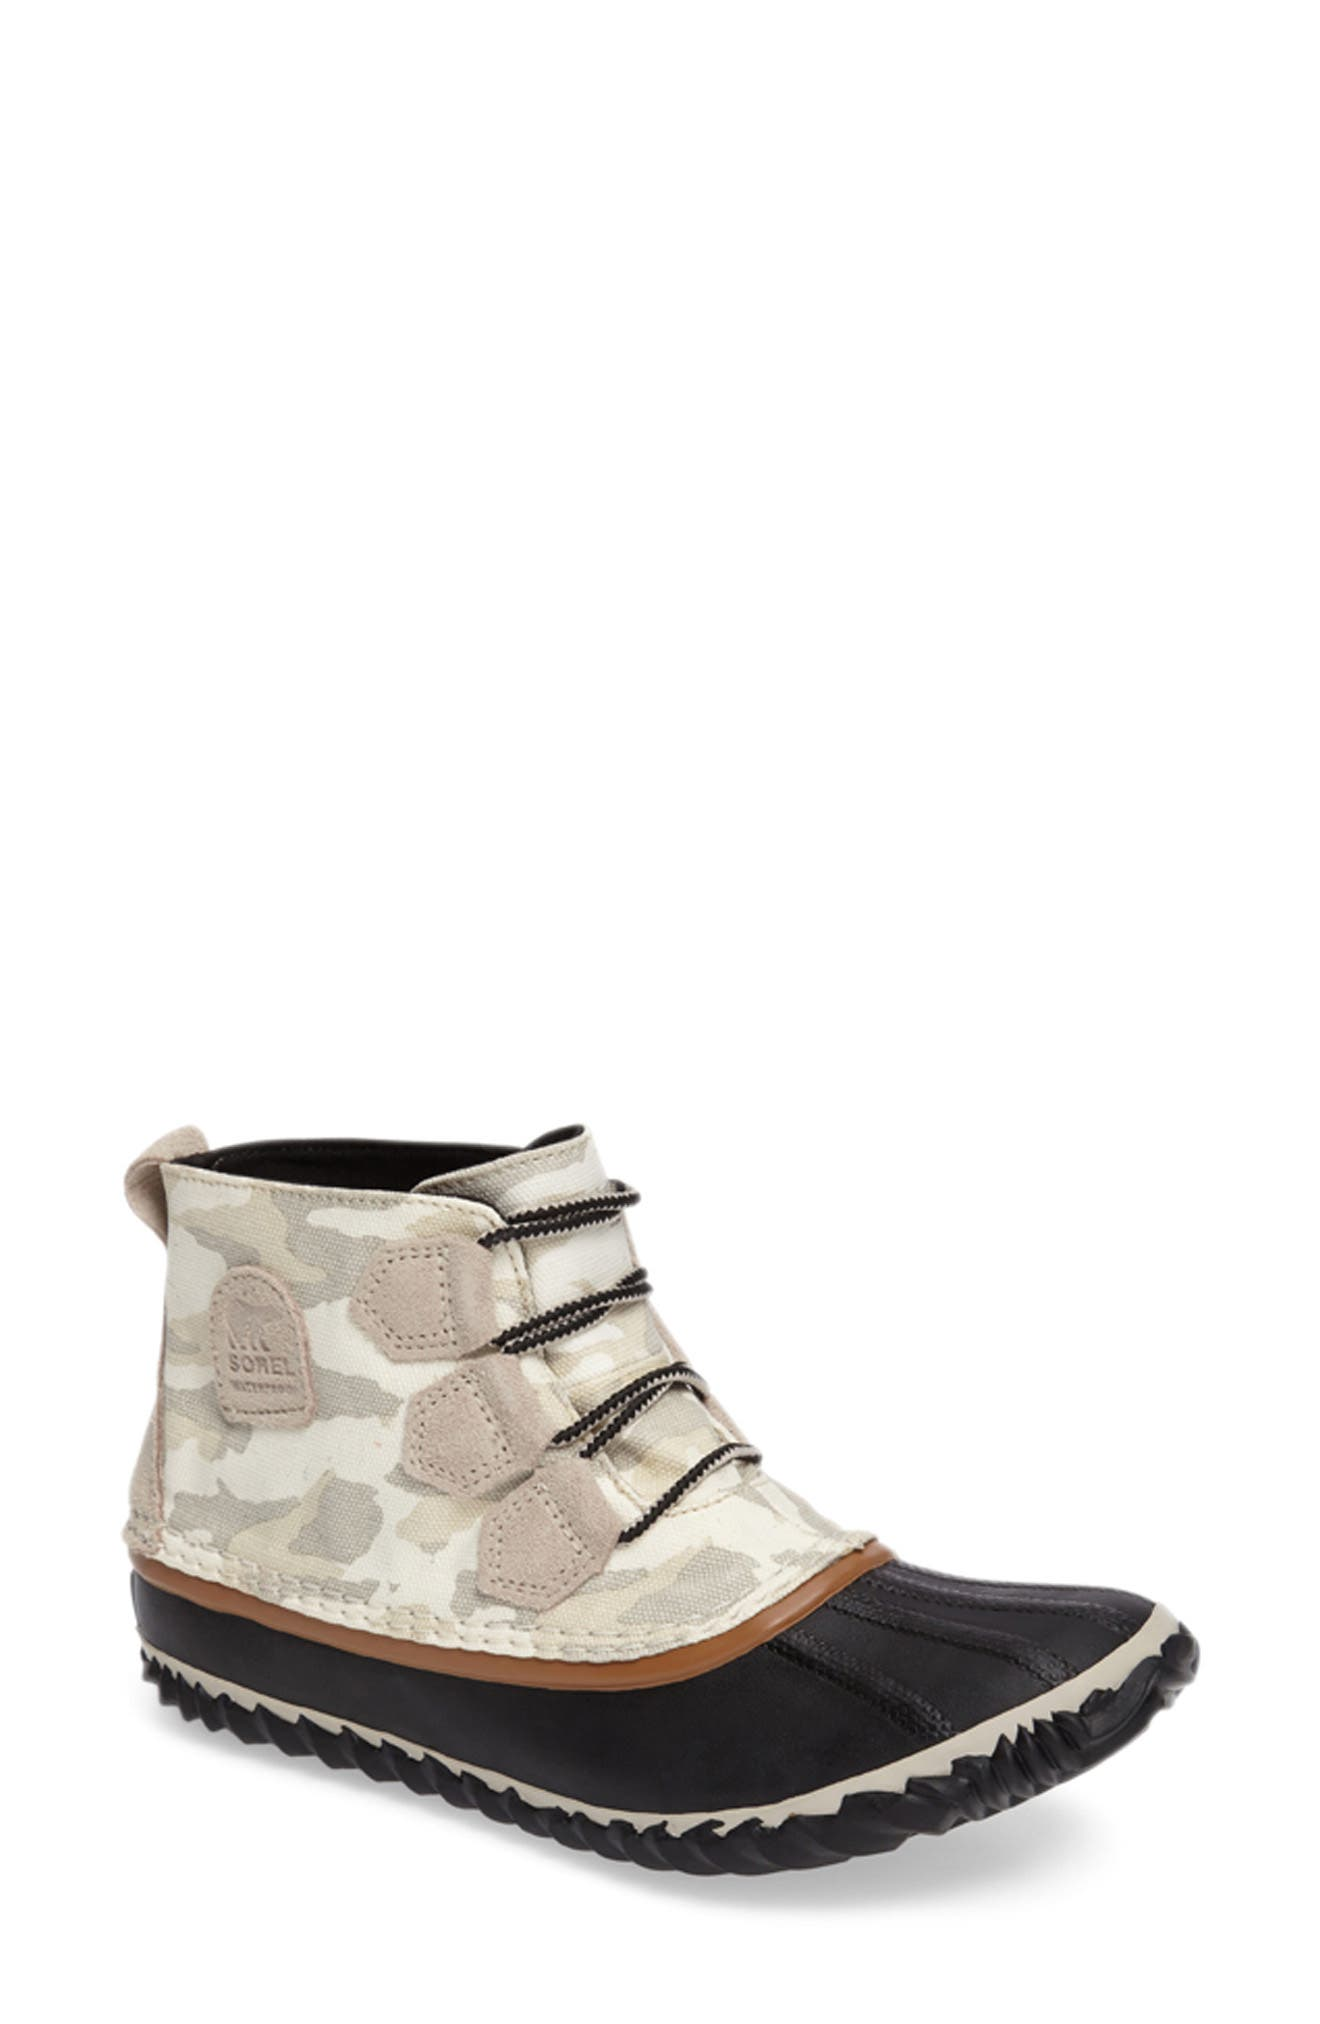 Out 'n' About Waterproof Duck Boot,                             Main thumbnail 1, color,                             125